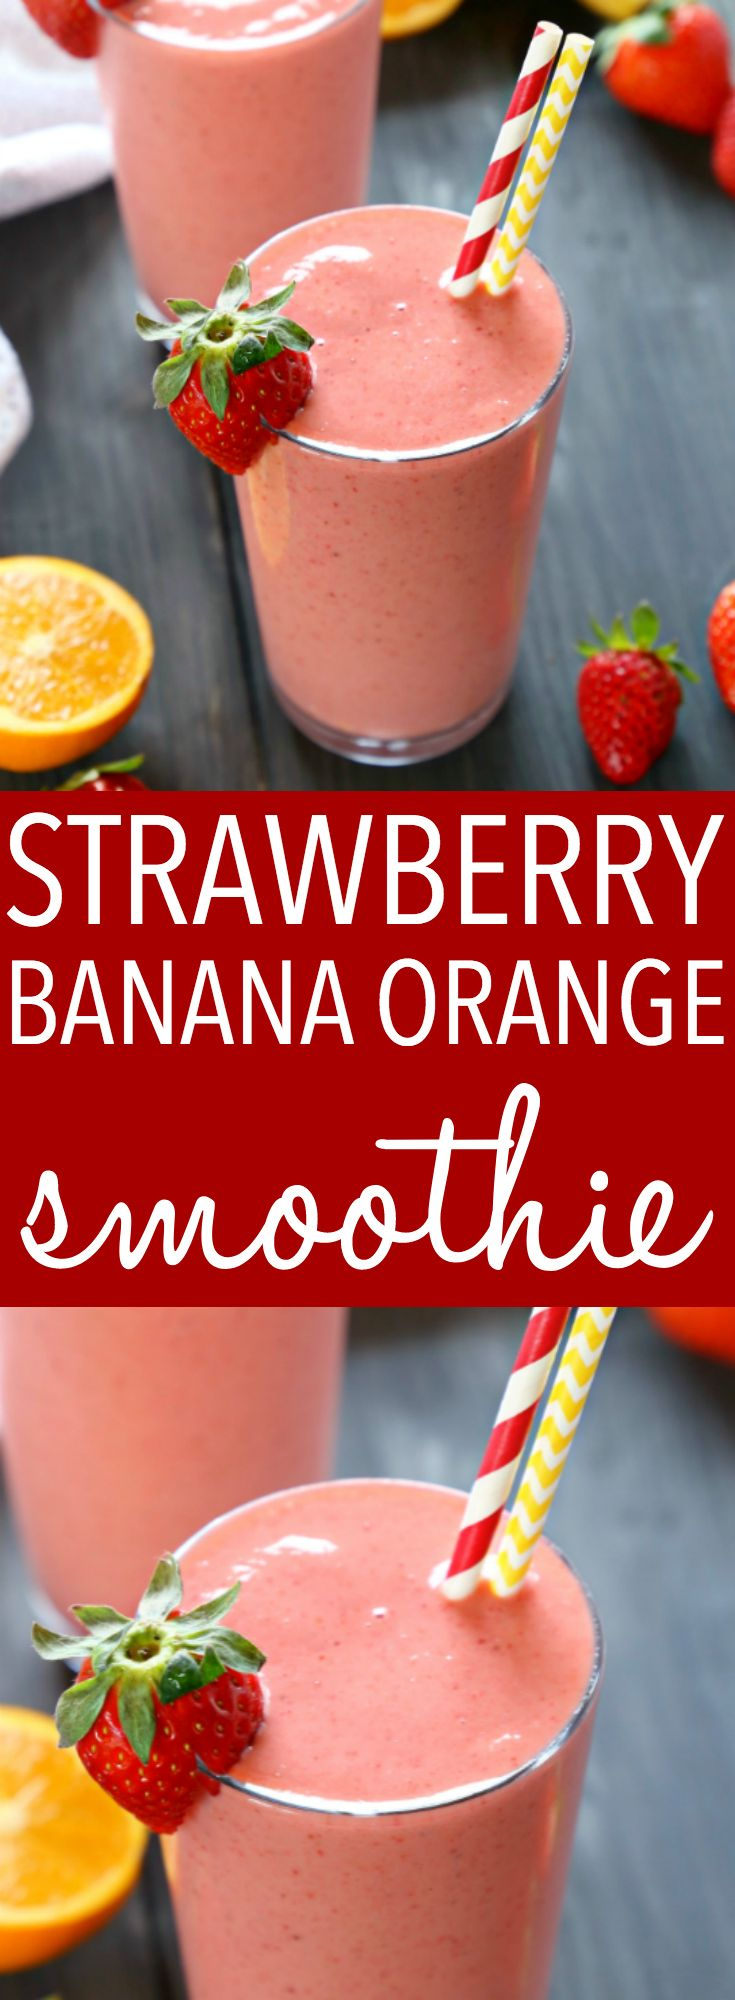 Strawberry Banana Orange Power Smoothie #fruitsmoothie